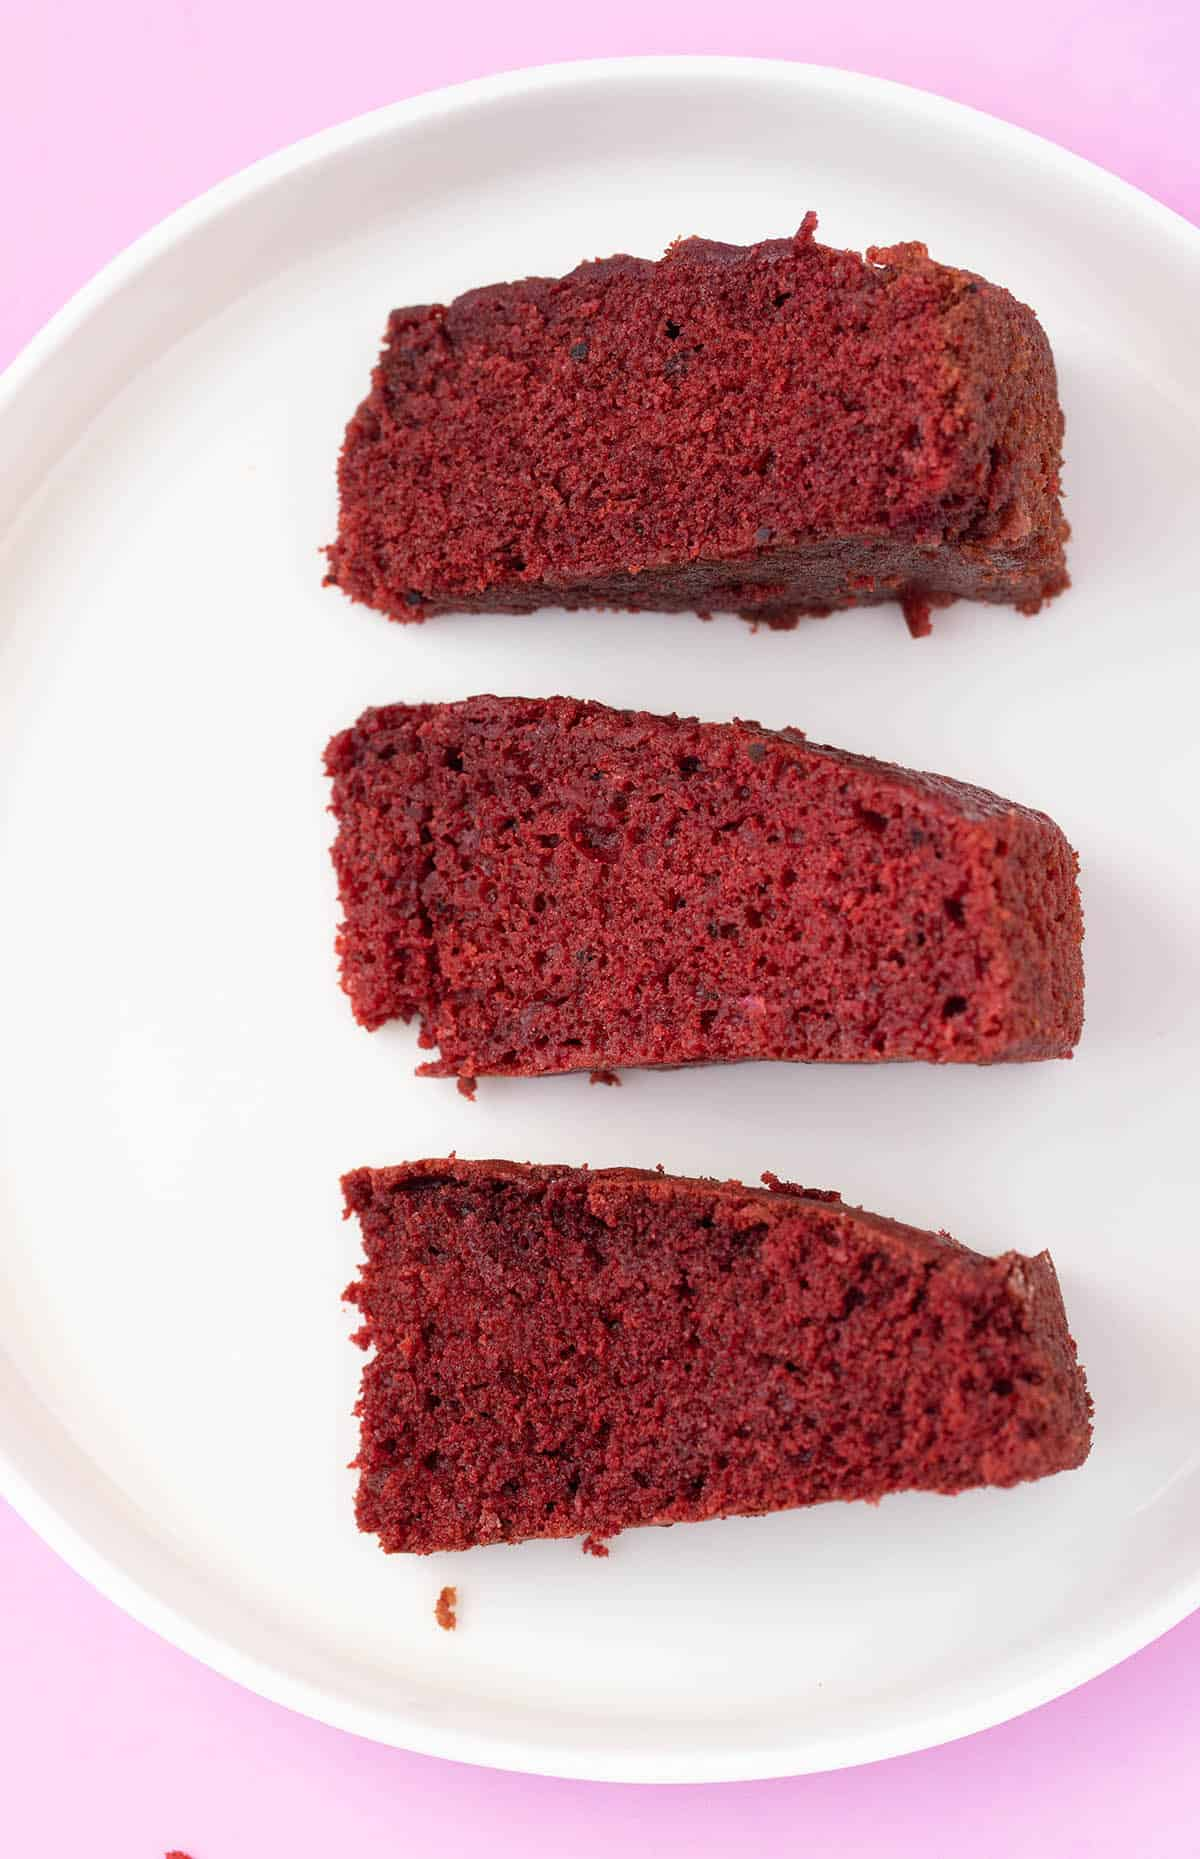 Top view of a white plate of different versions of Red Velvet Cake (recipe testing)